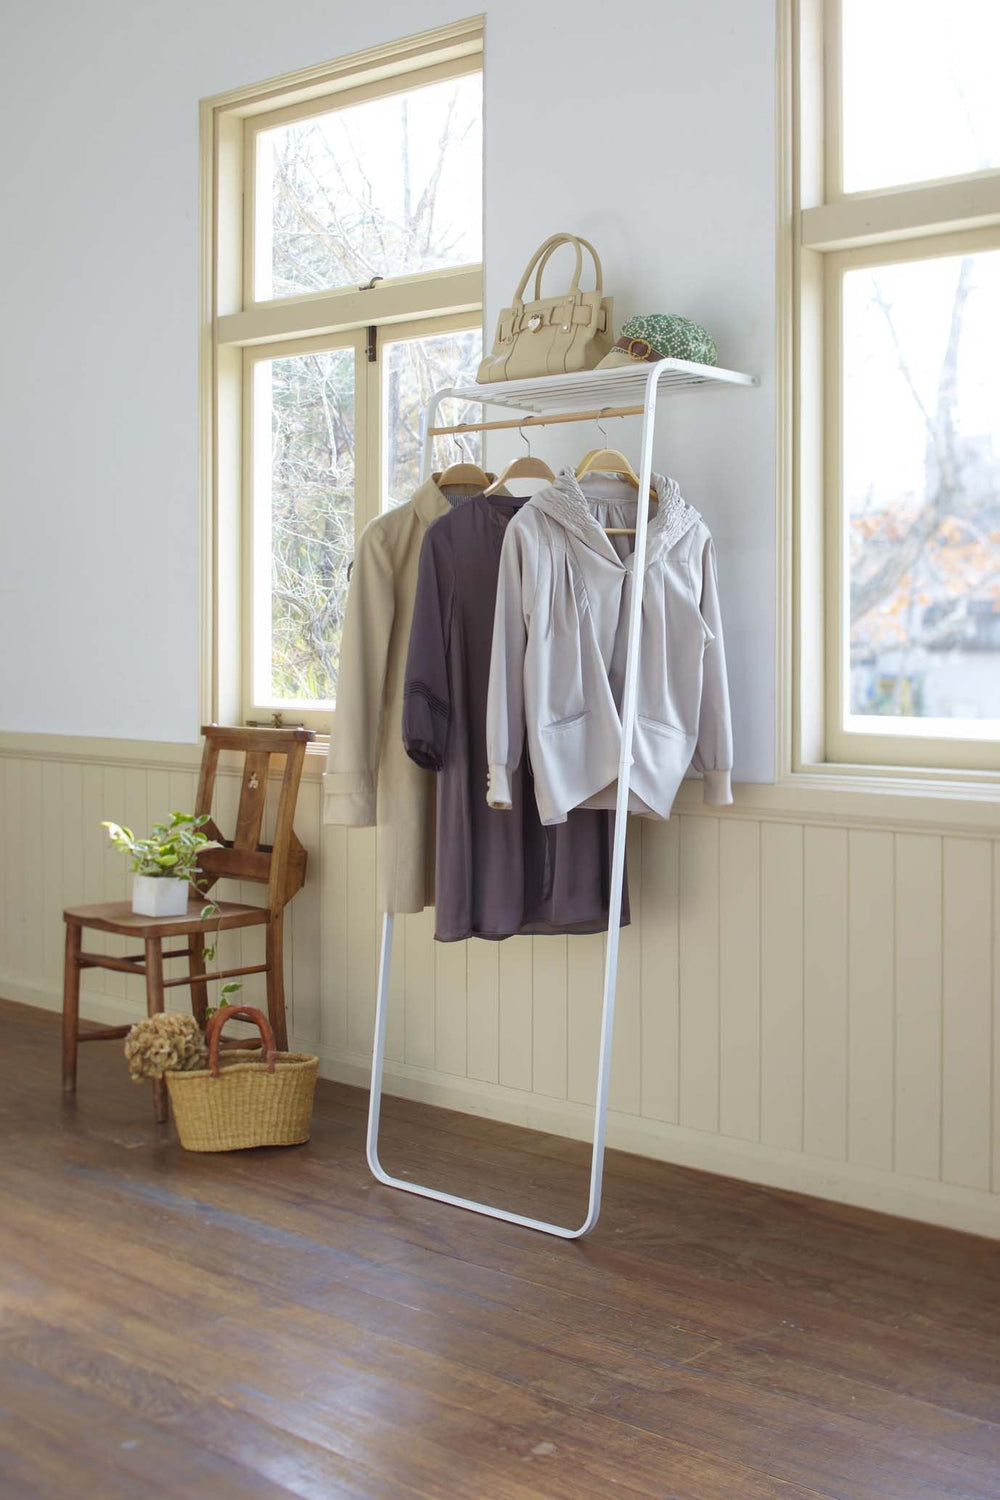 Yamazaki's white leaning coat rack hung with coats. Handbags and accessories sit on a top shelf.